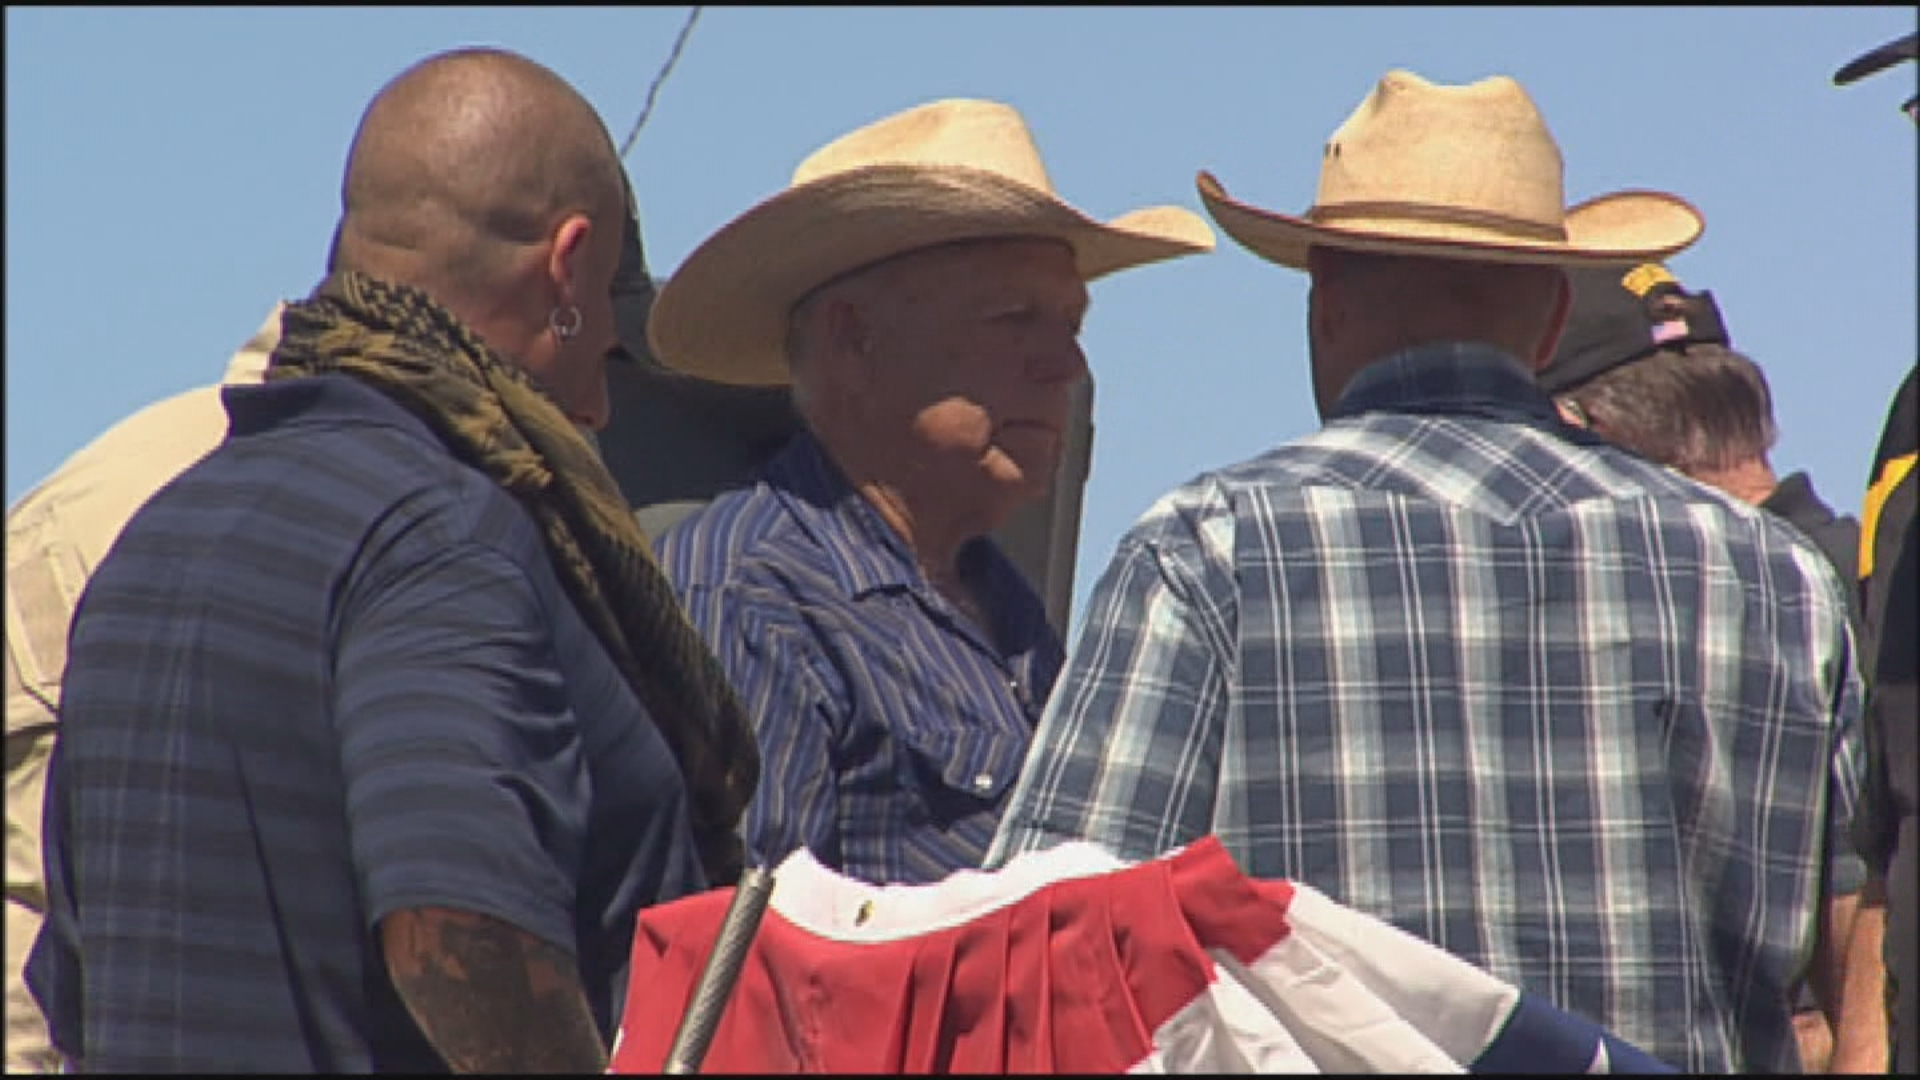 Could the mass shooting on the Las Vegas Strip affect the high-profile Bundy case? That's the question as the trial for rancher Cliven Bundy and his sons Ryan and Ammon is set to begin Monday morning. (KSNV file photo)